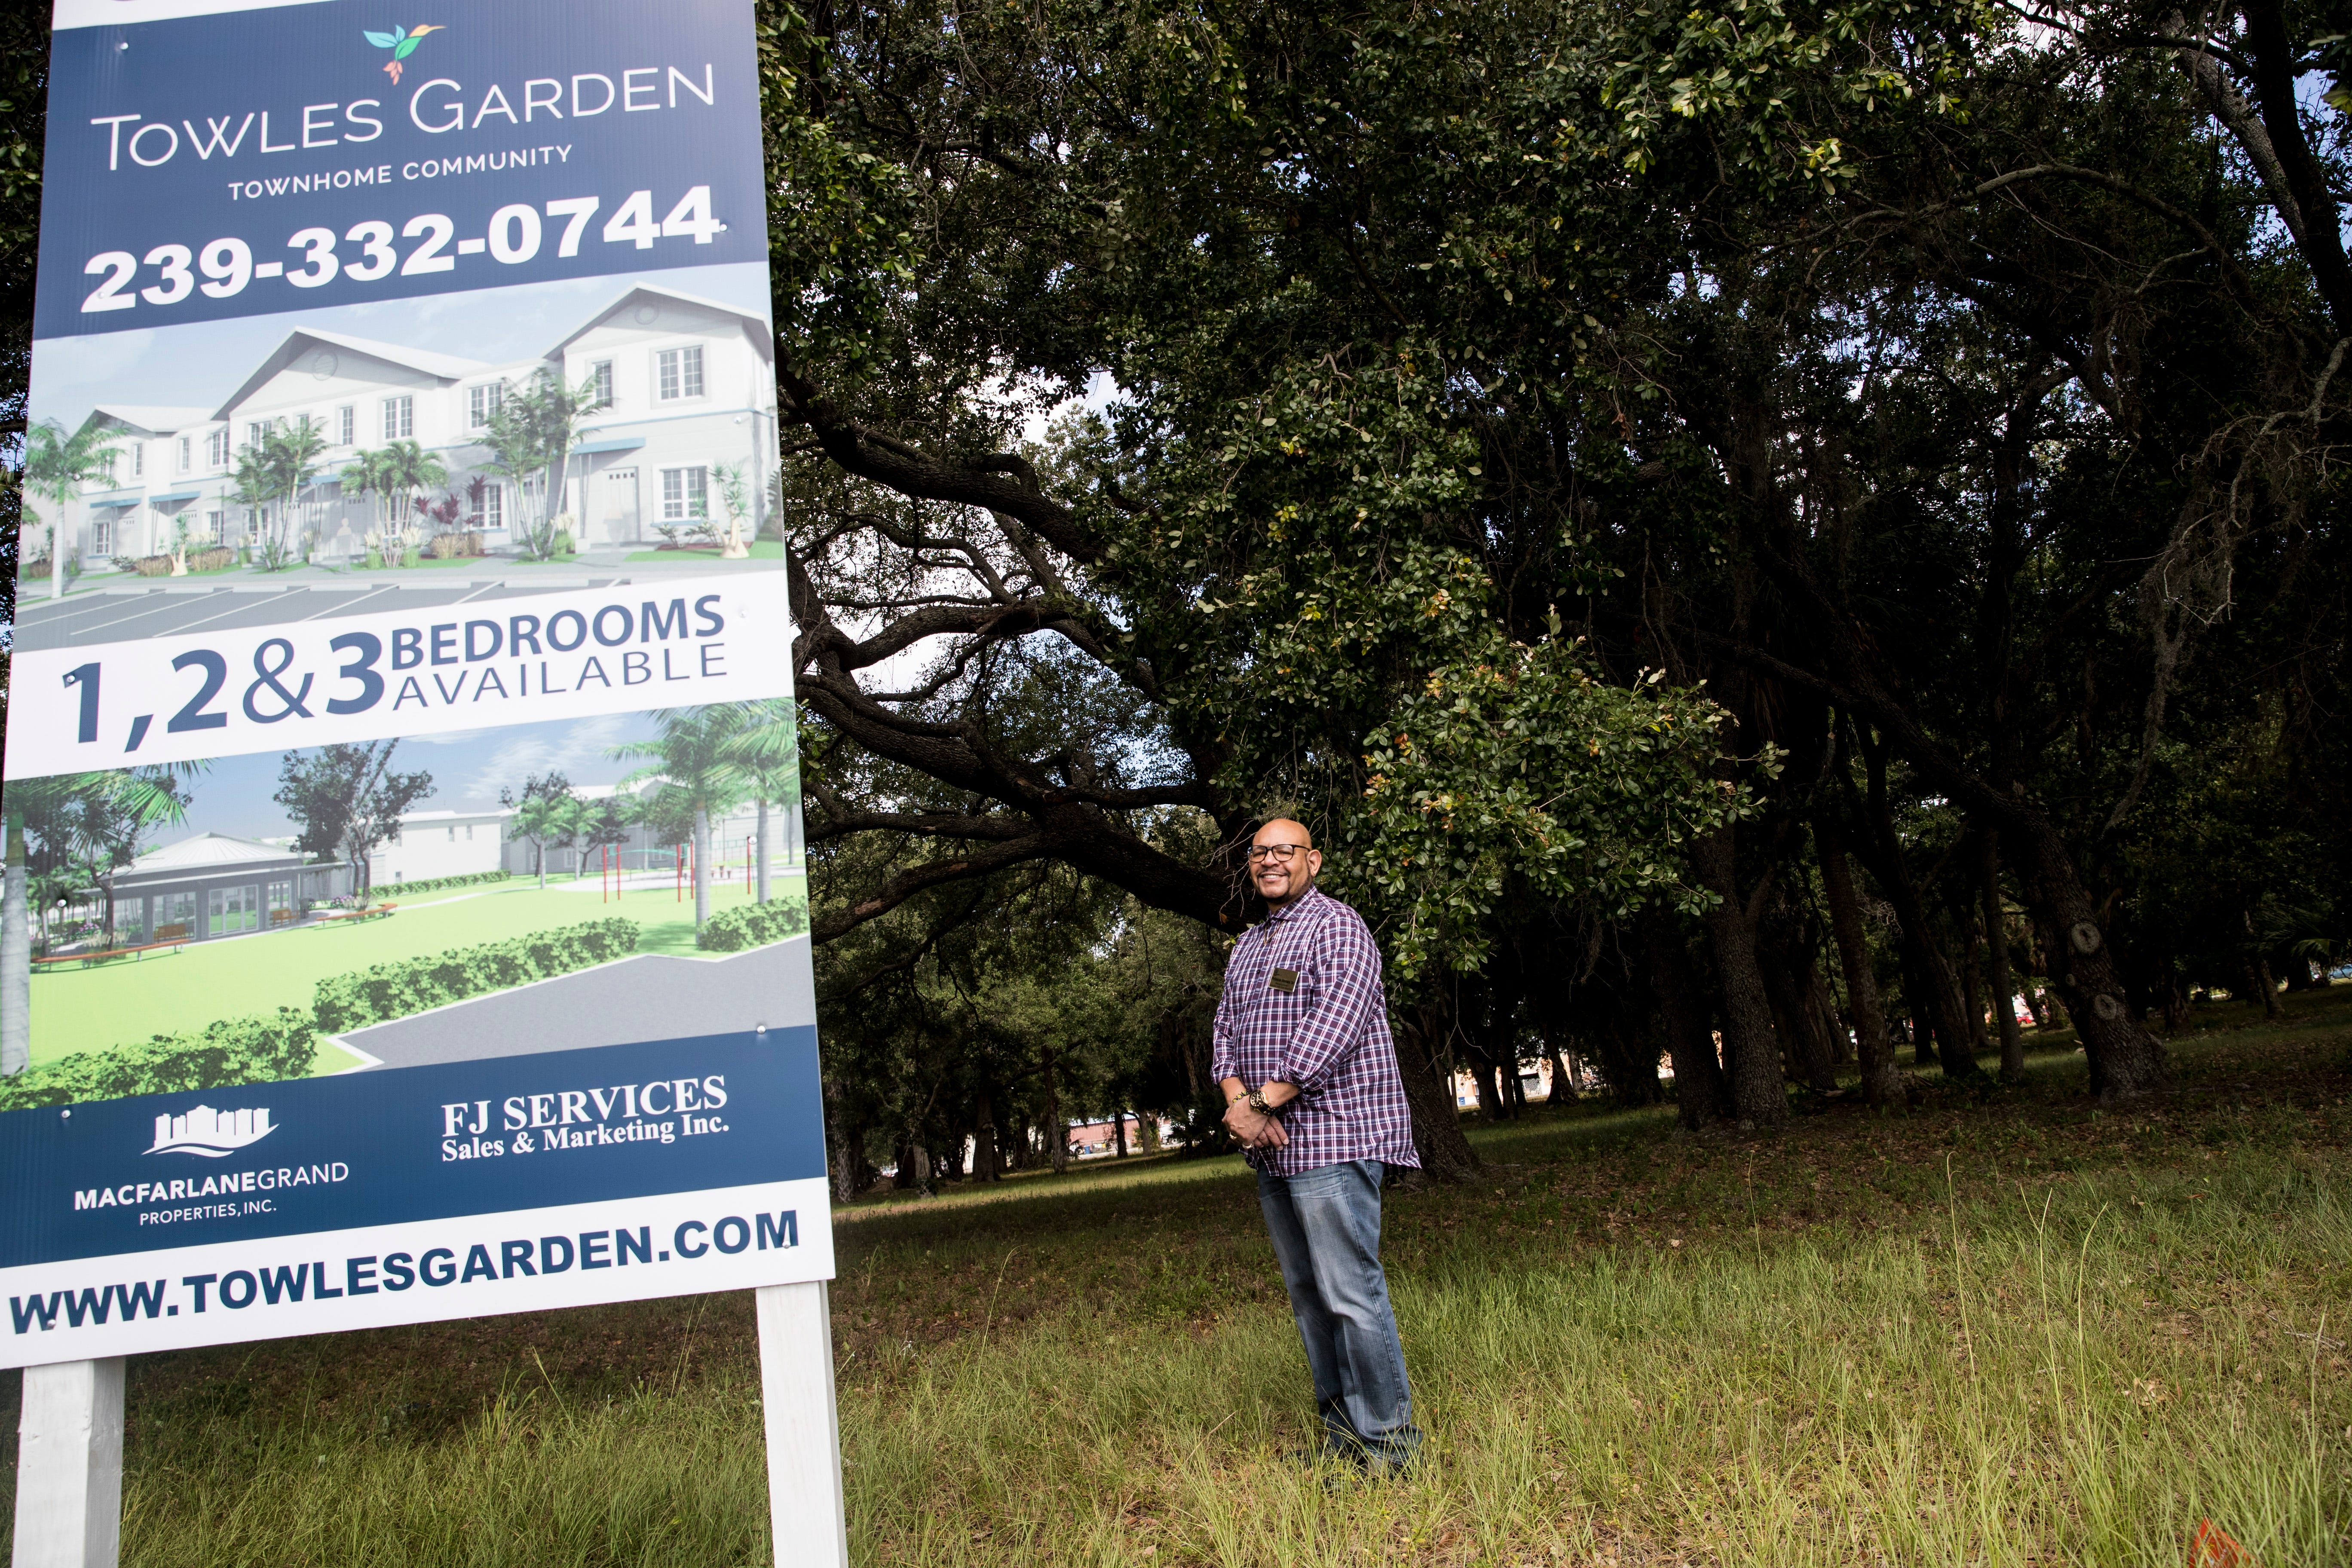 In the Know: Towles Gardens will provide 140 'affordable' townhomes in Fort Myers 2